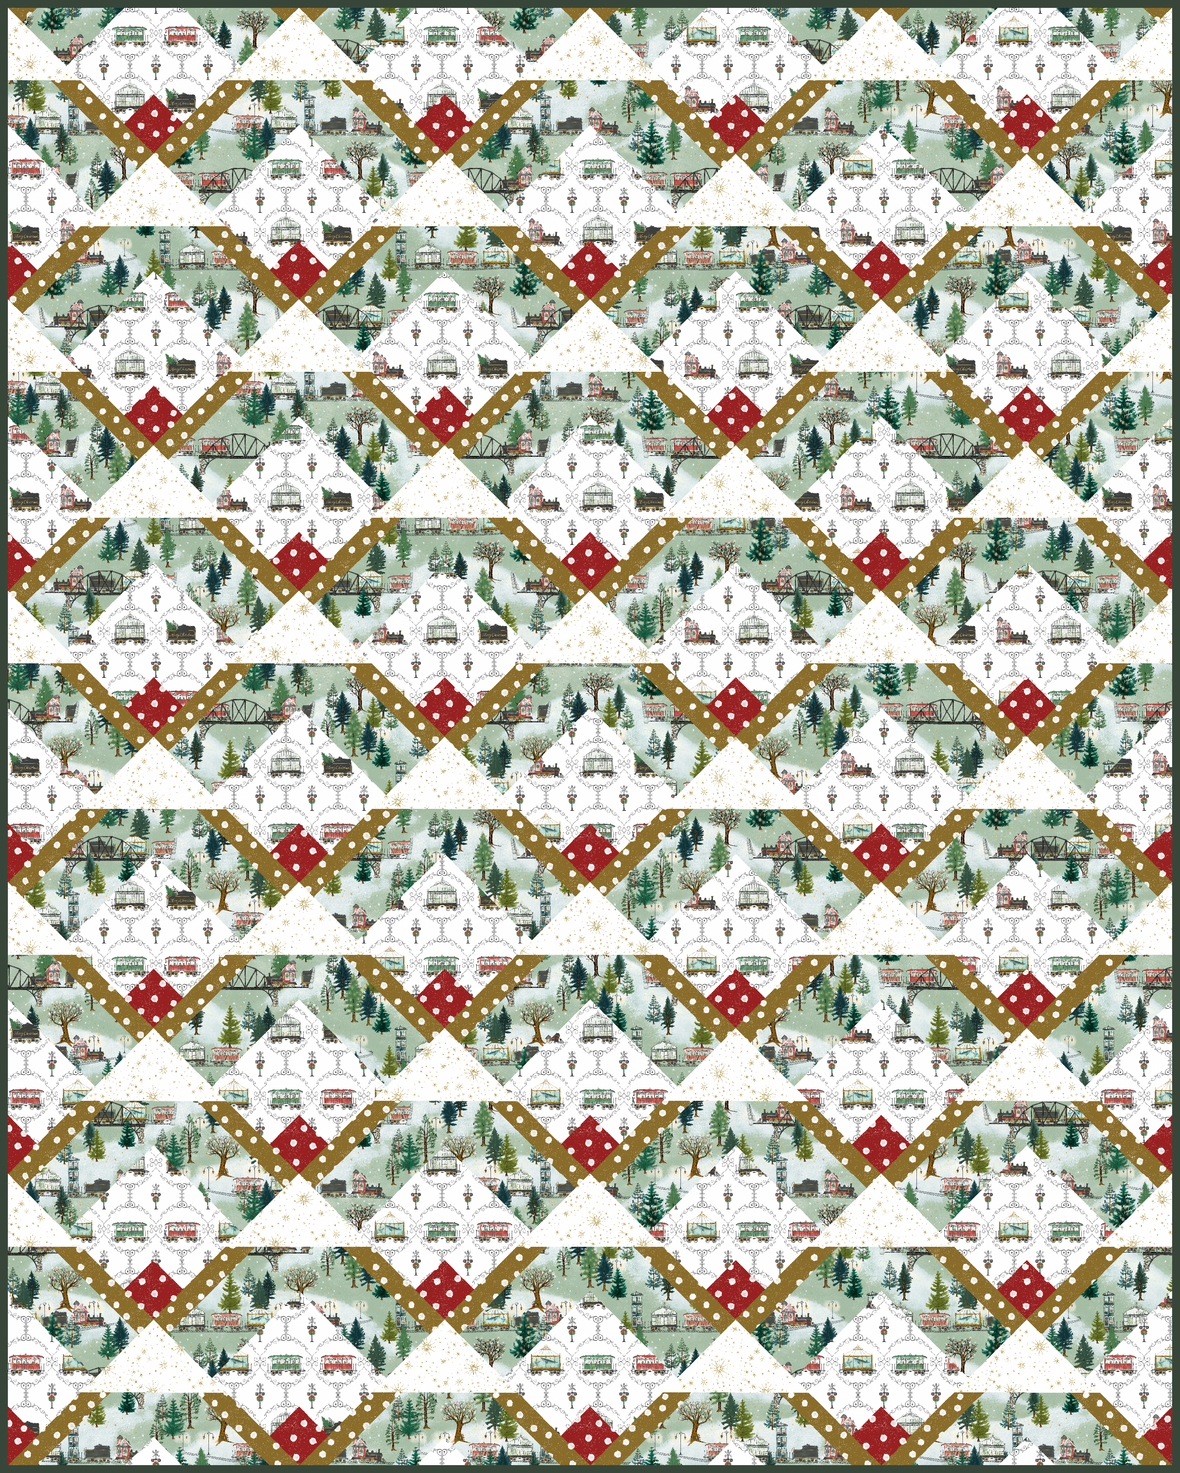 Snow Cabin Quilt - Christmas Trains 2